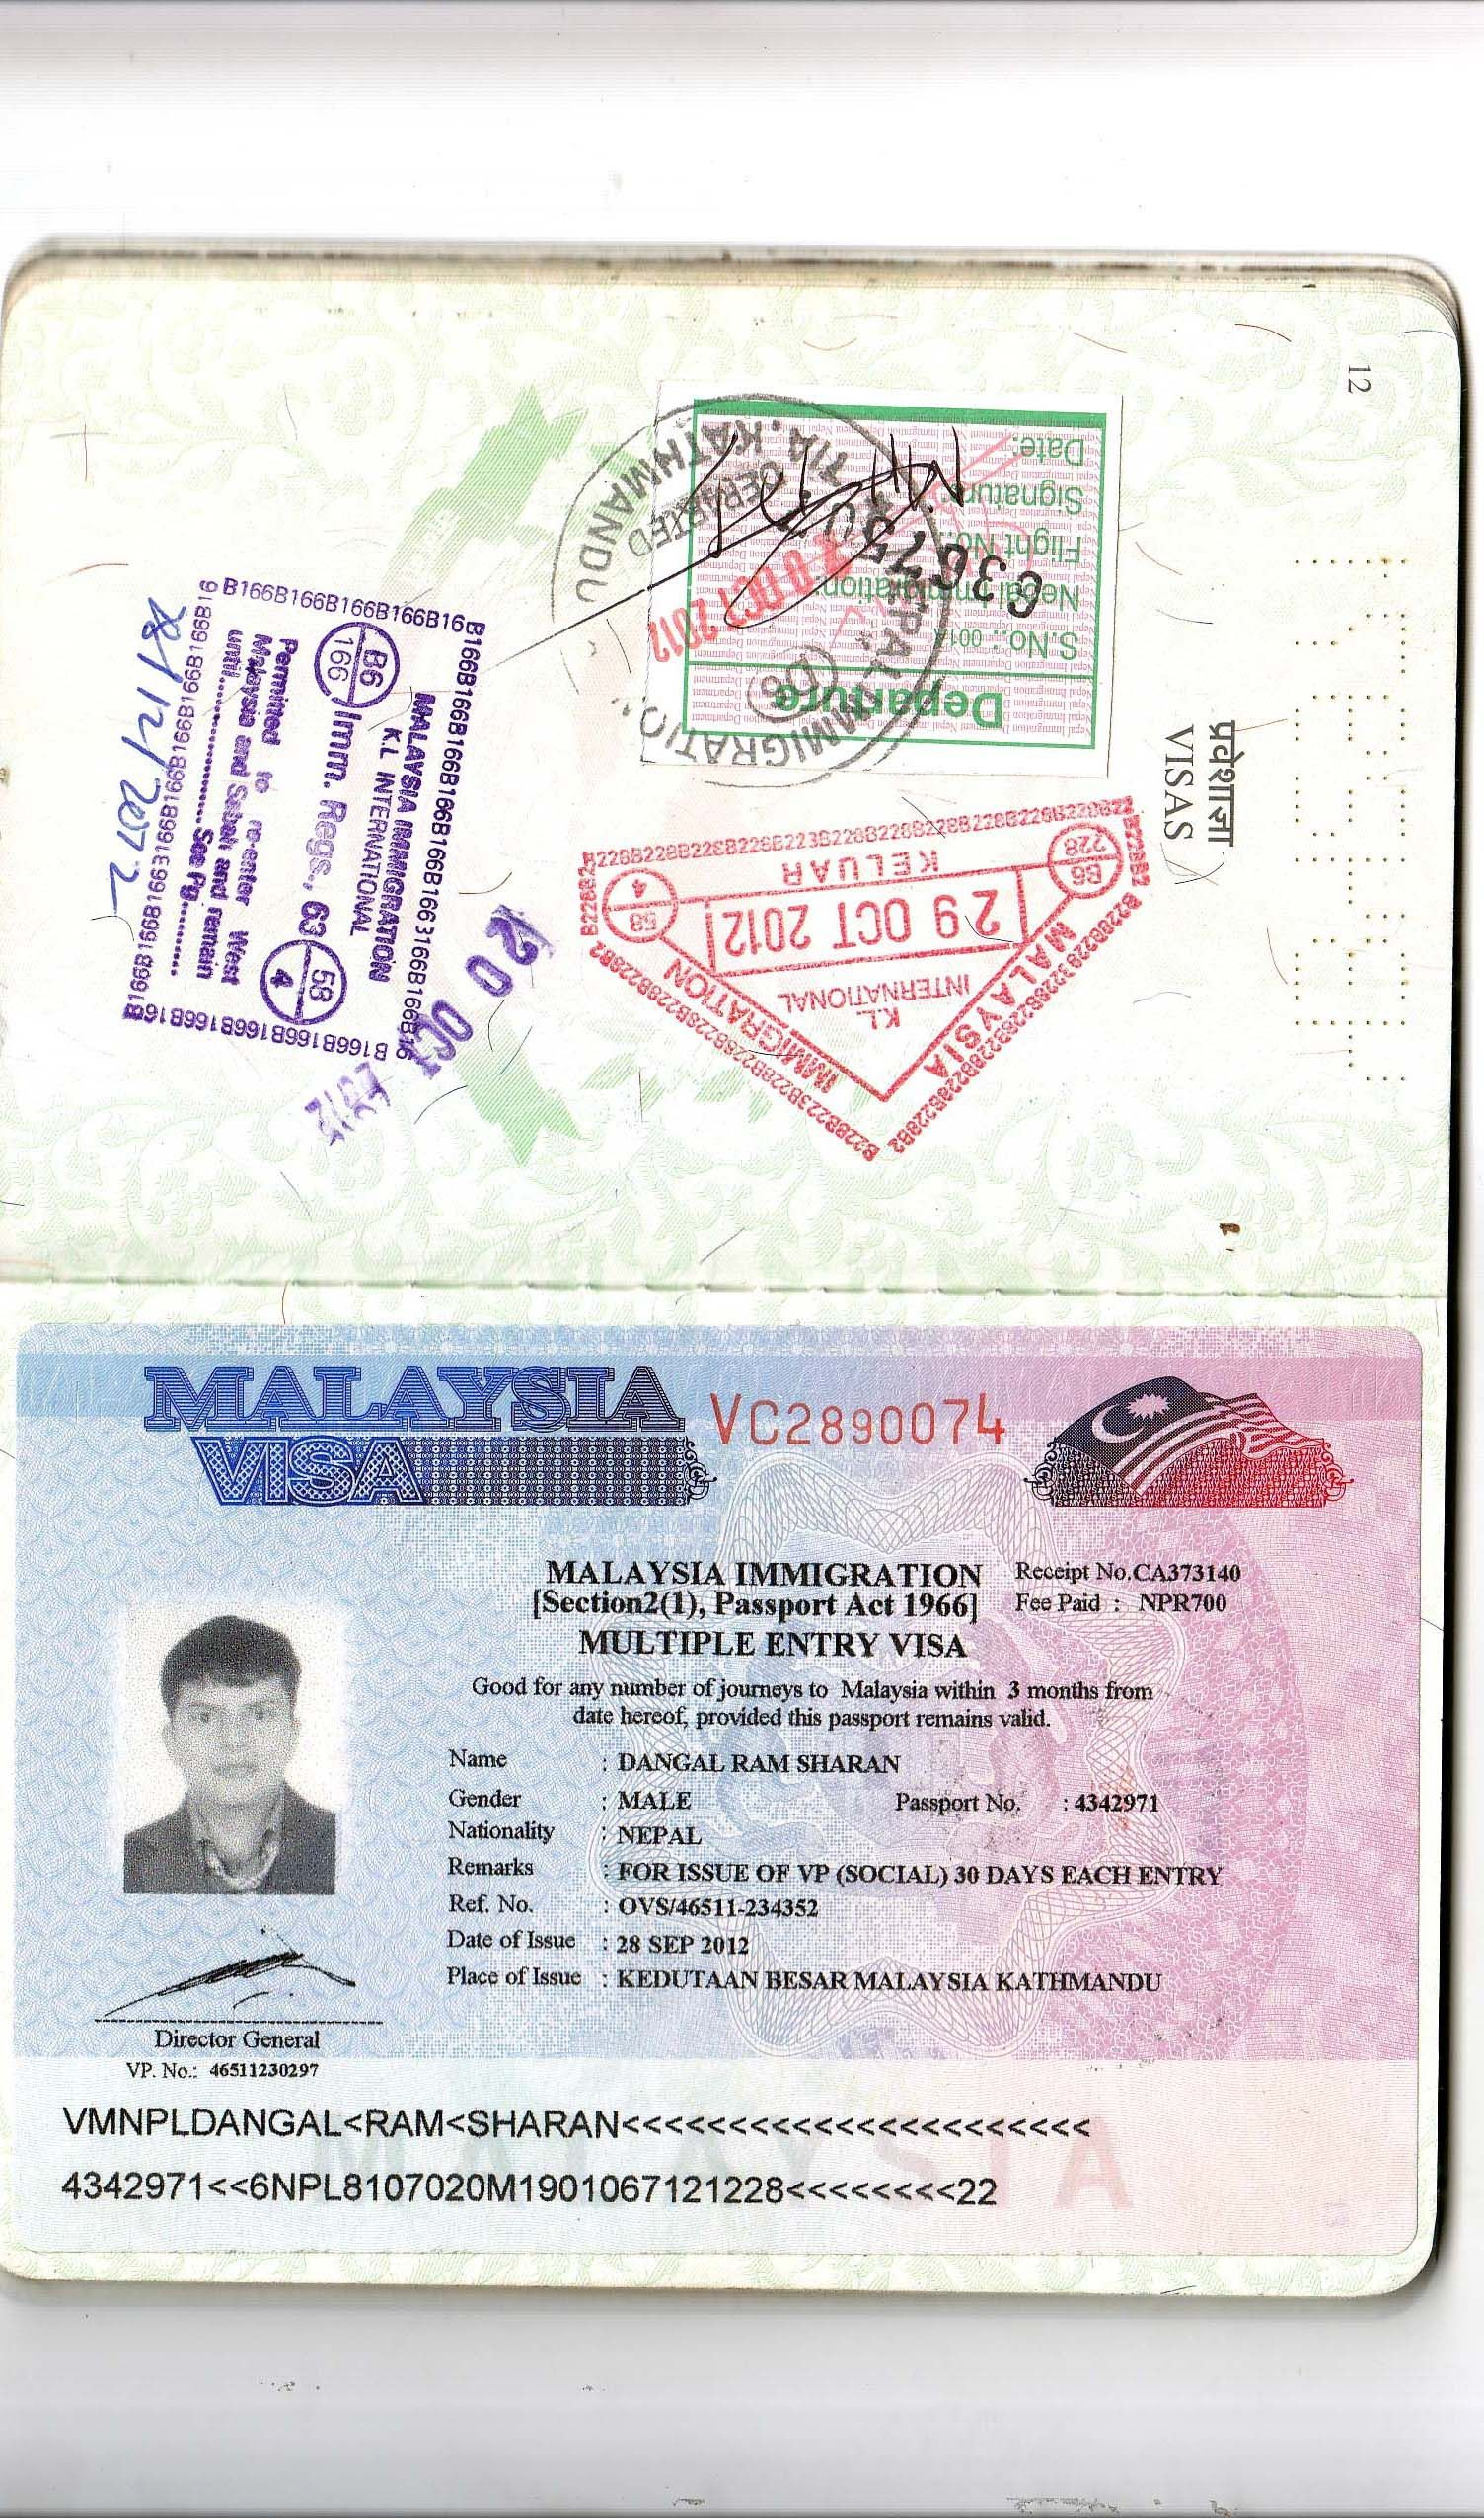 Pin By Ram Sharan Dangal On Passports Travel Visas